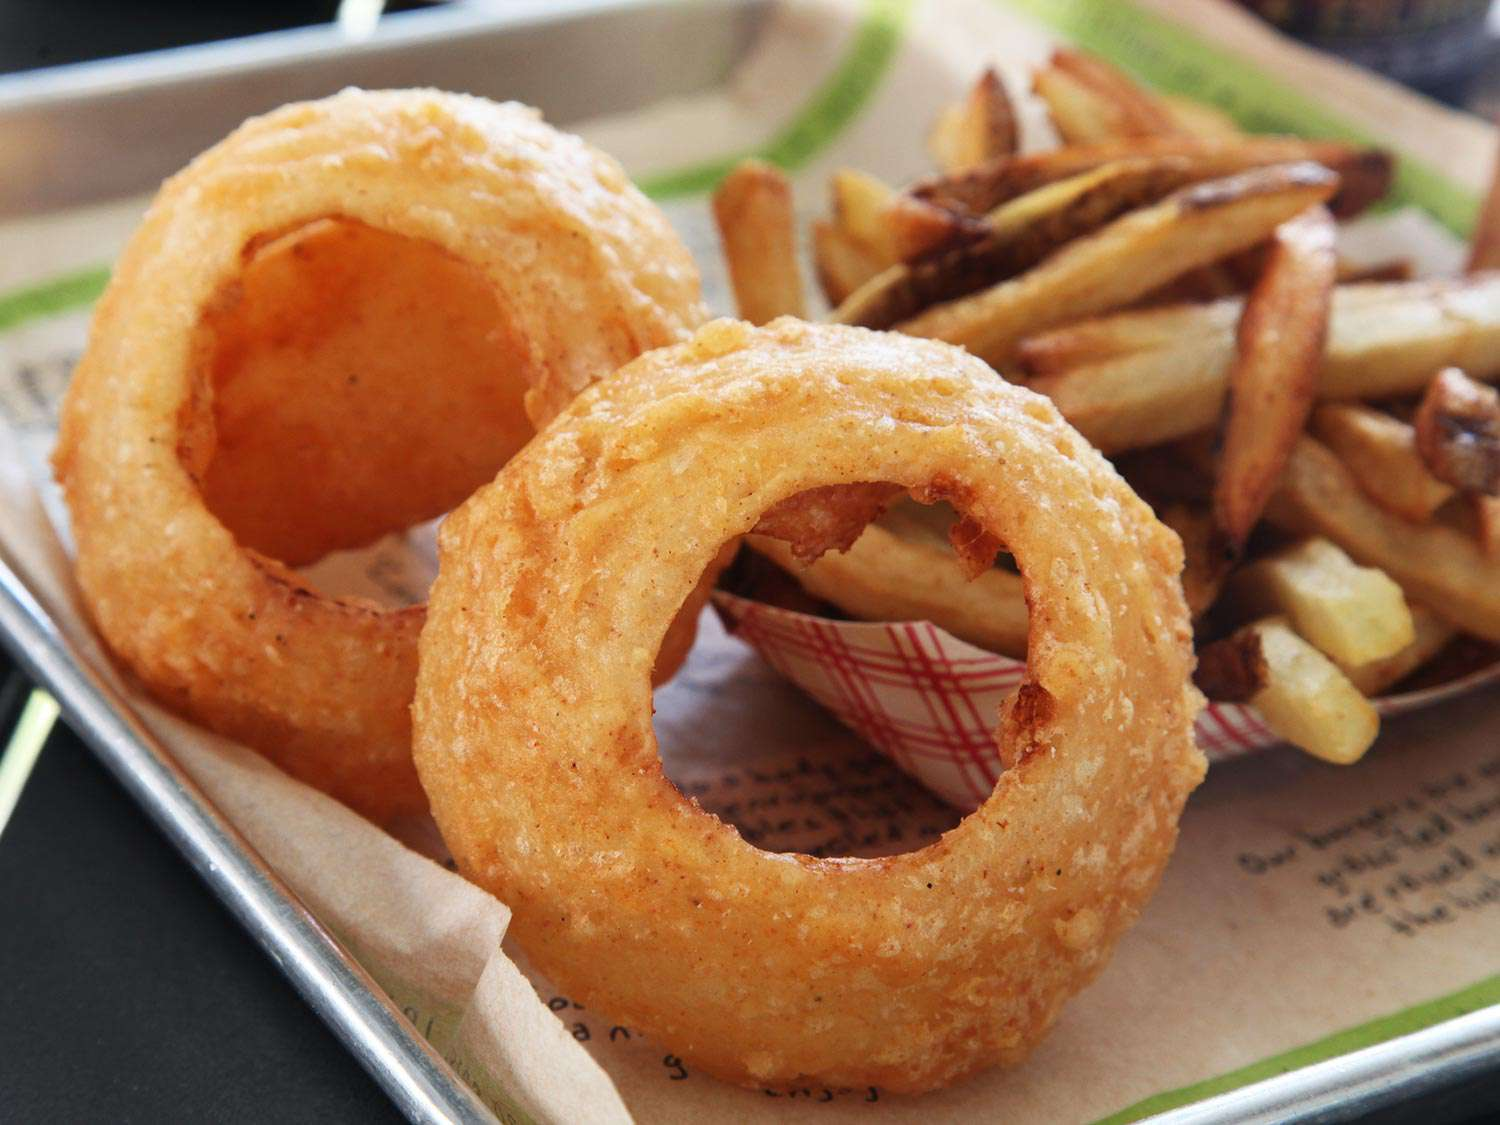 A serving tray with giant onion rings from Burger Fi and a paper container of french fries